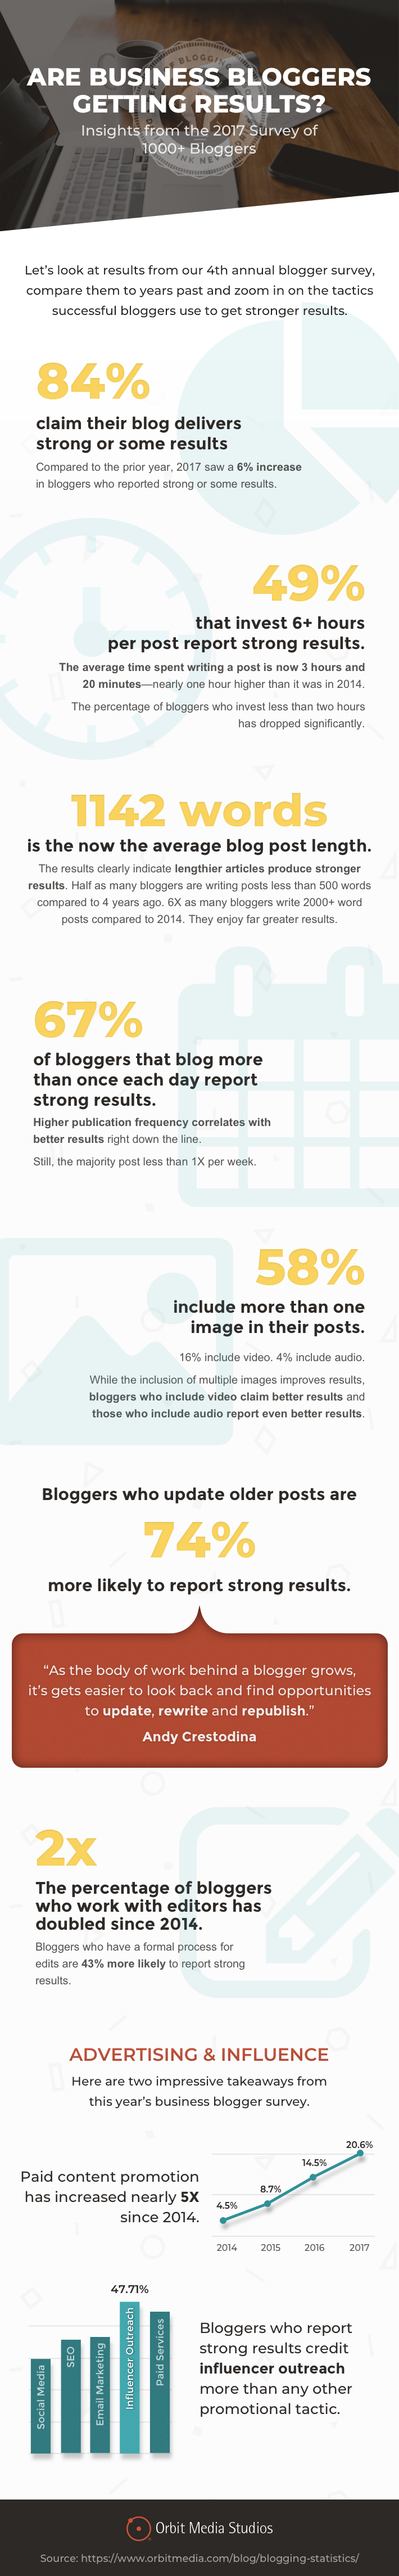 blogger-survey 2017-infographic-final.png